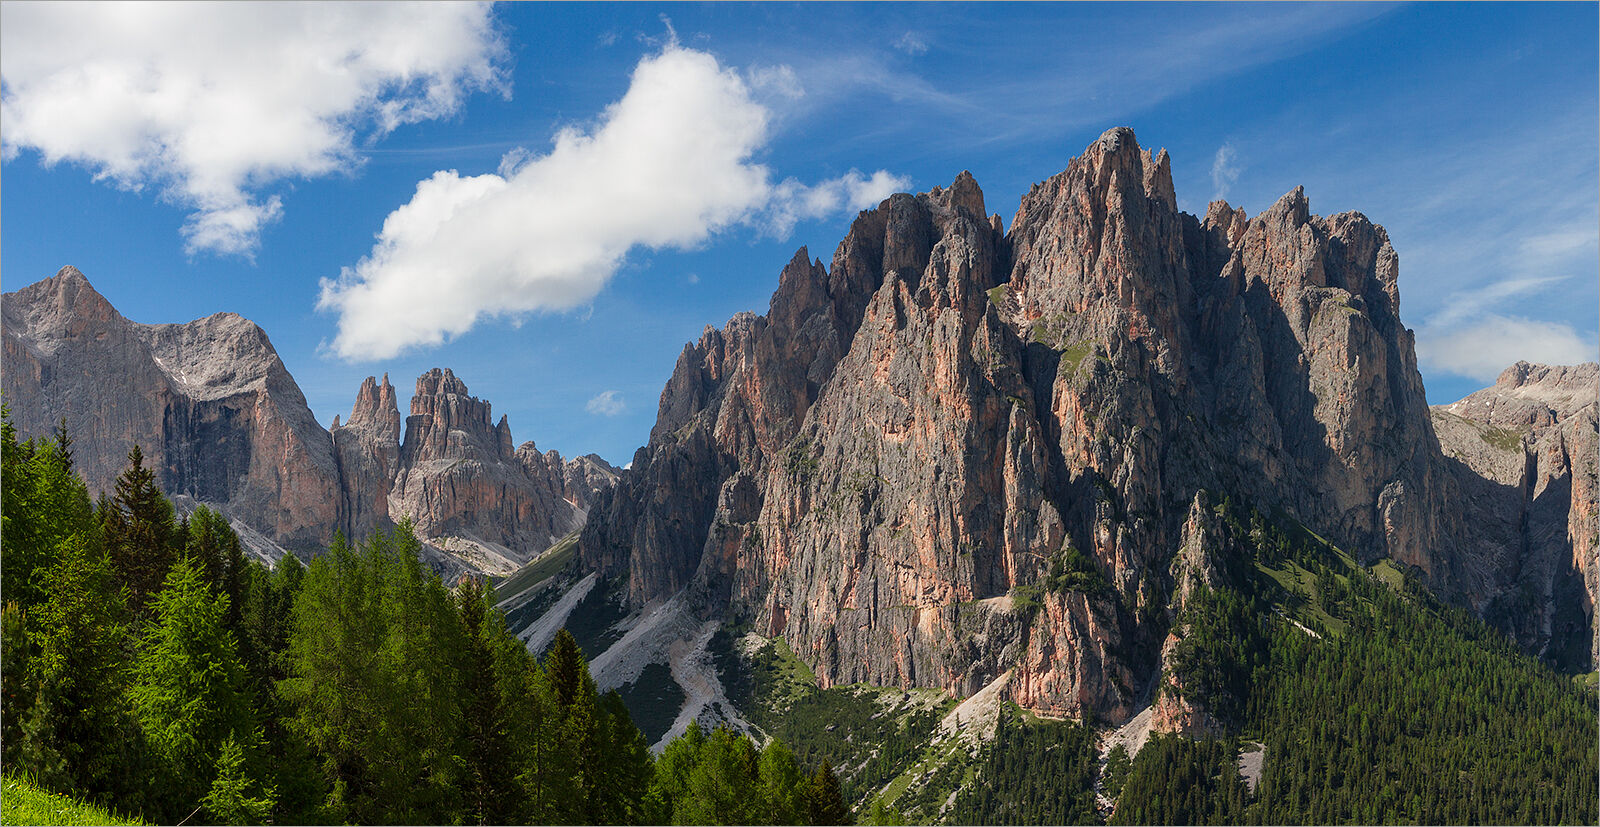 The Dolomites, in northern Italy - The Rosengarten.